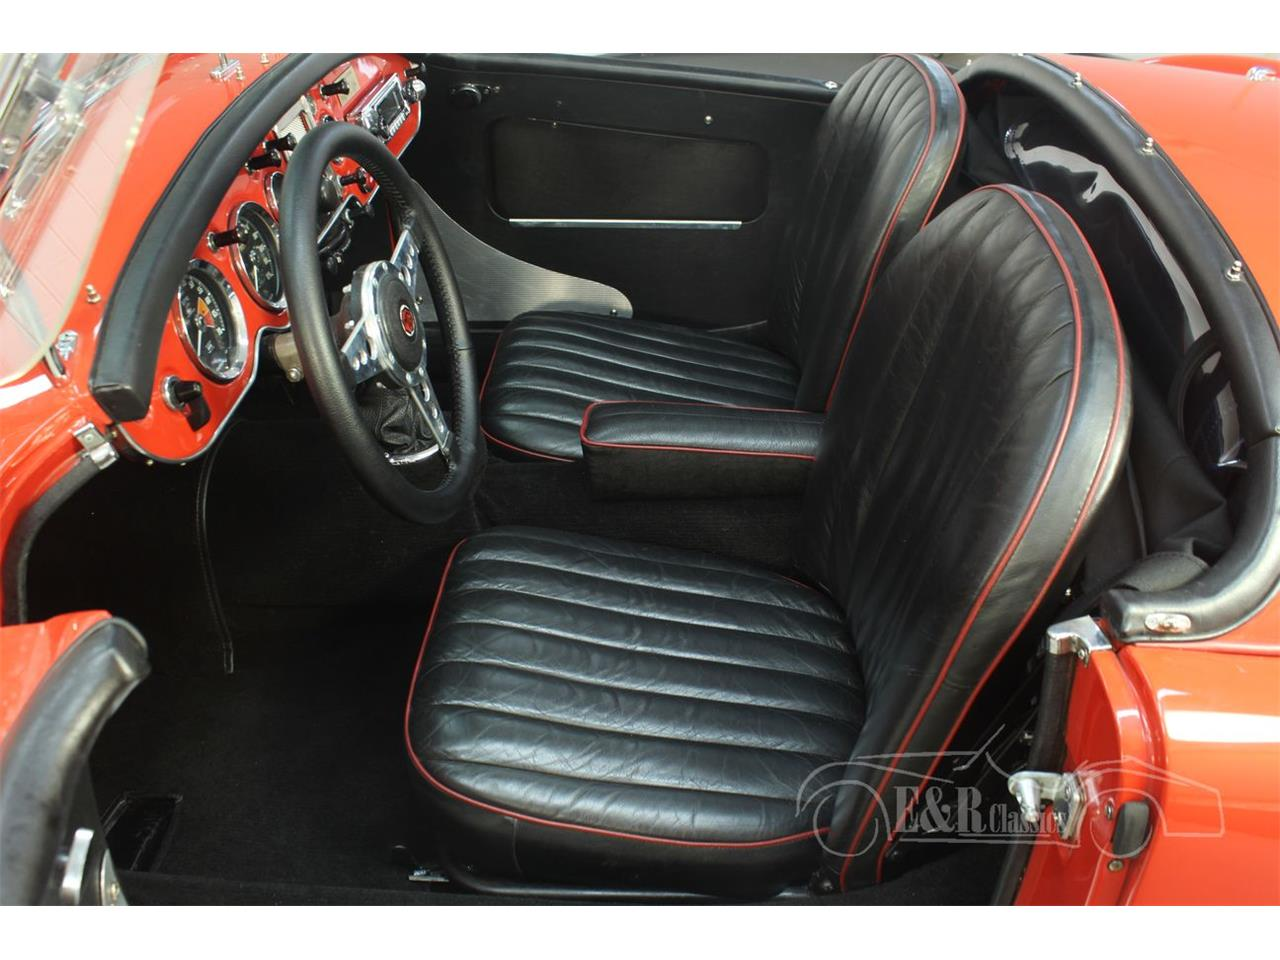 Large Picture of Classic 1962 MGA located in Waalwijk noord brabant - $44,900.00 - Q2W8